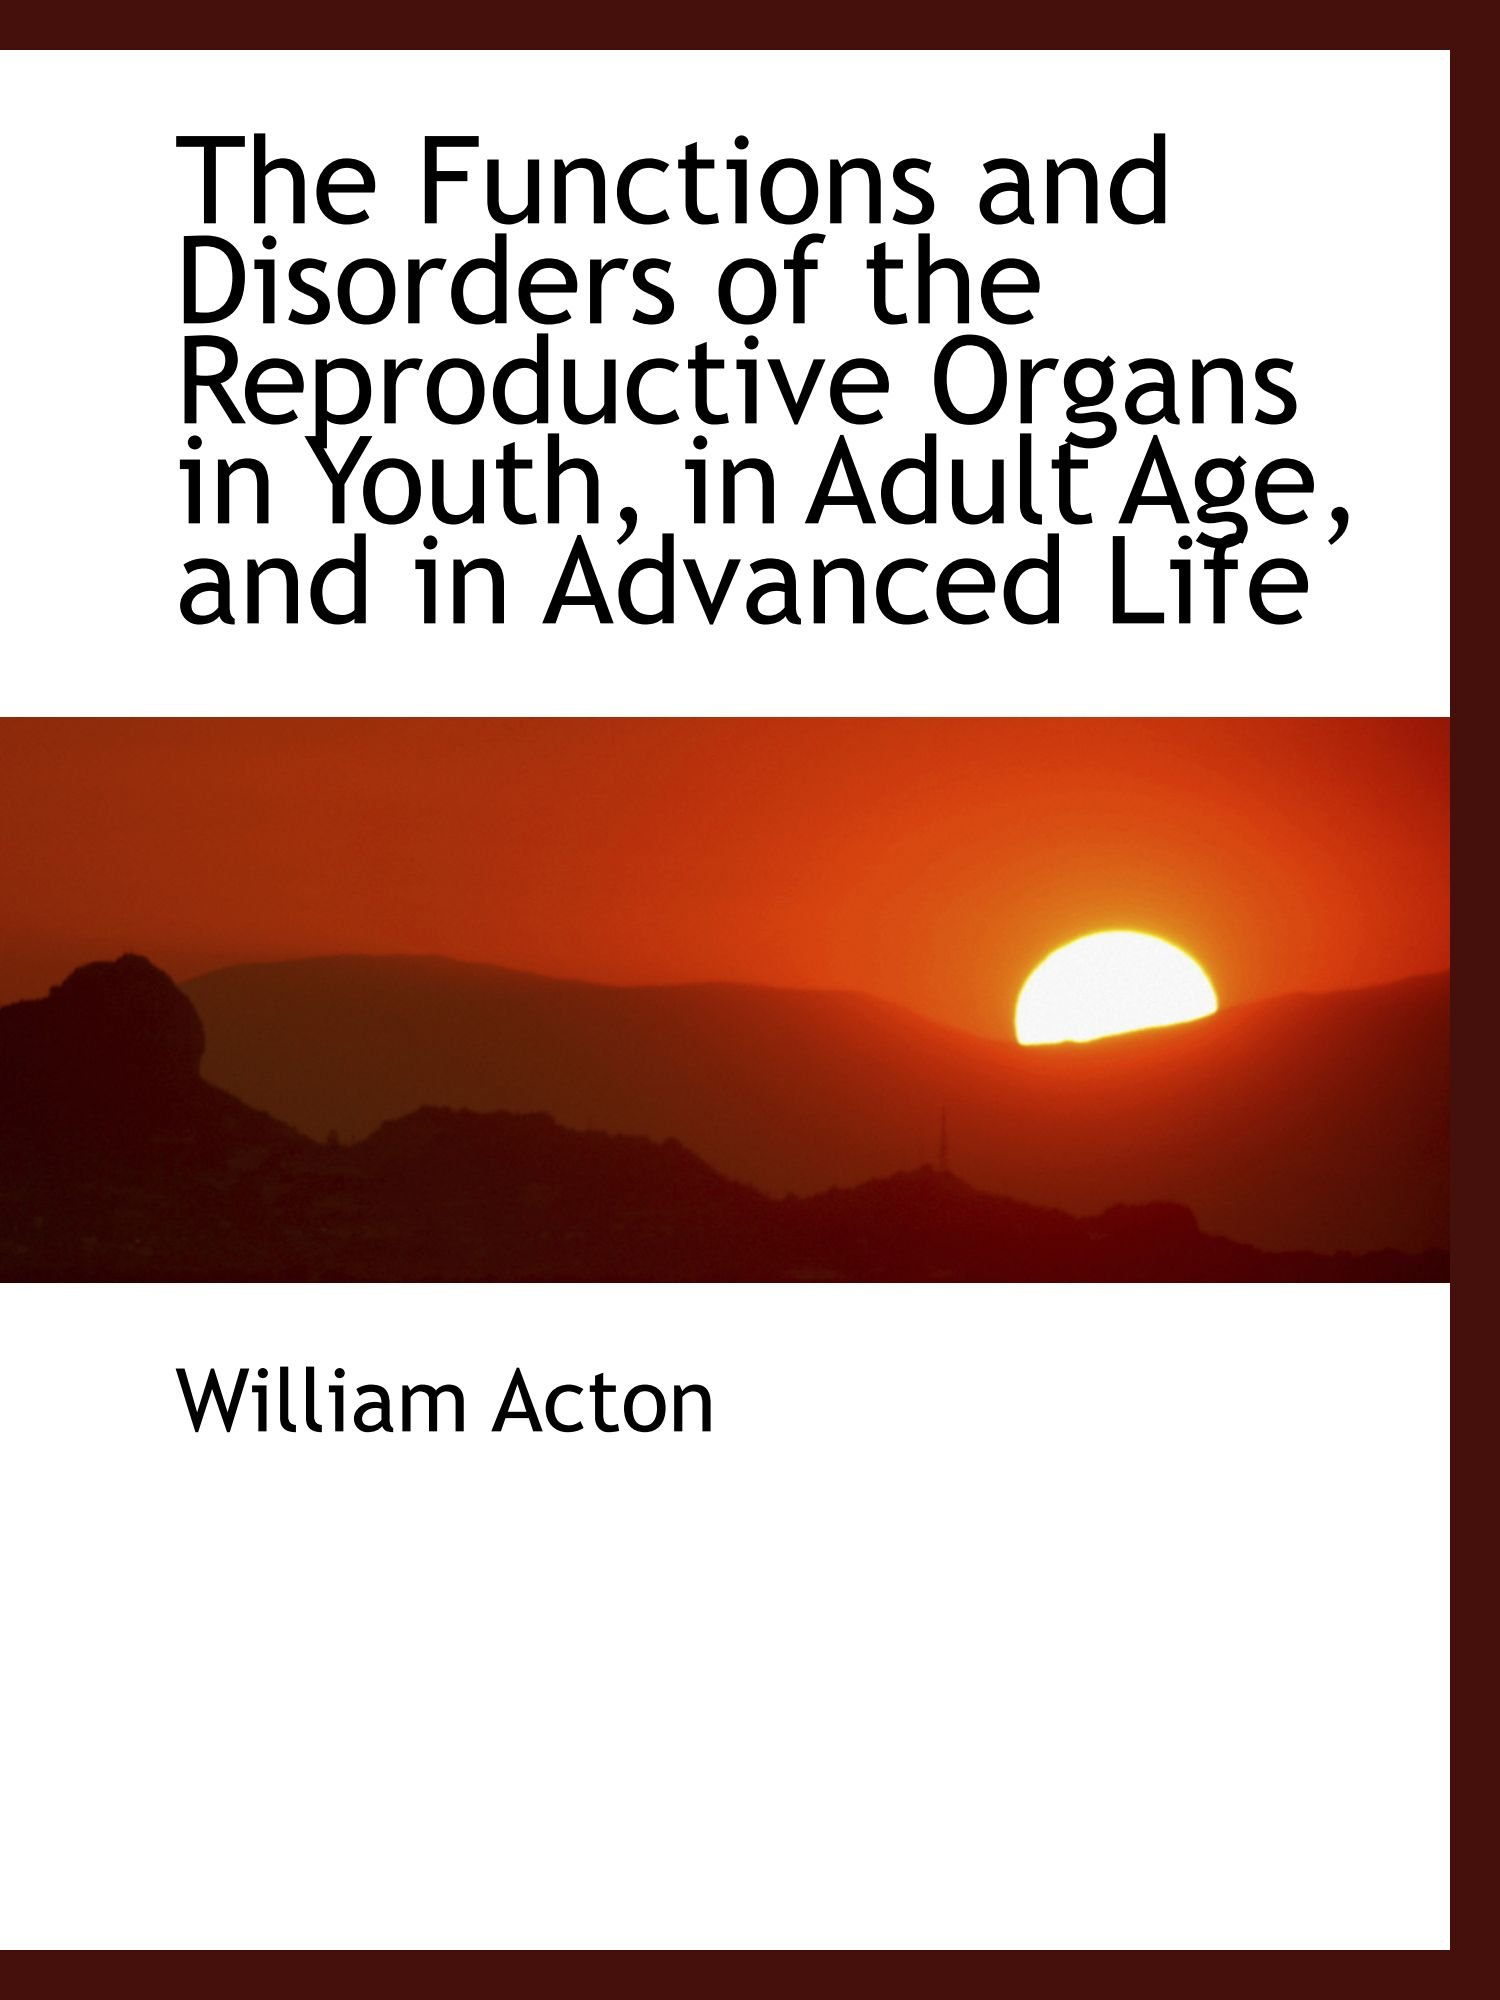 The Functions and Disorders of the Reproductive Organs in Youth, in Adult Age, and in Advanced Life ebook